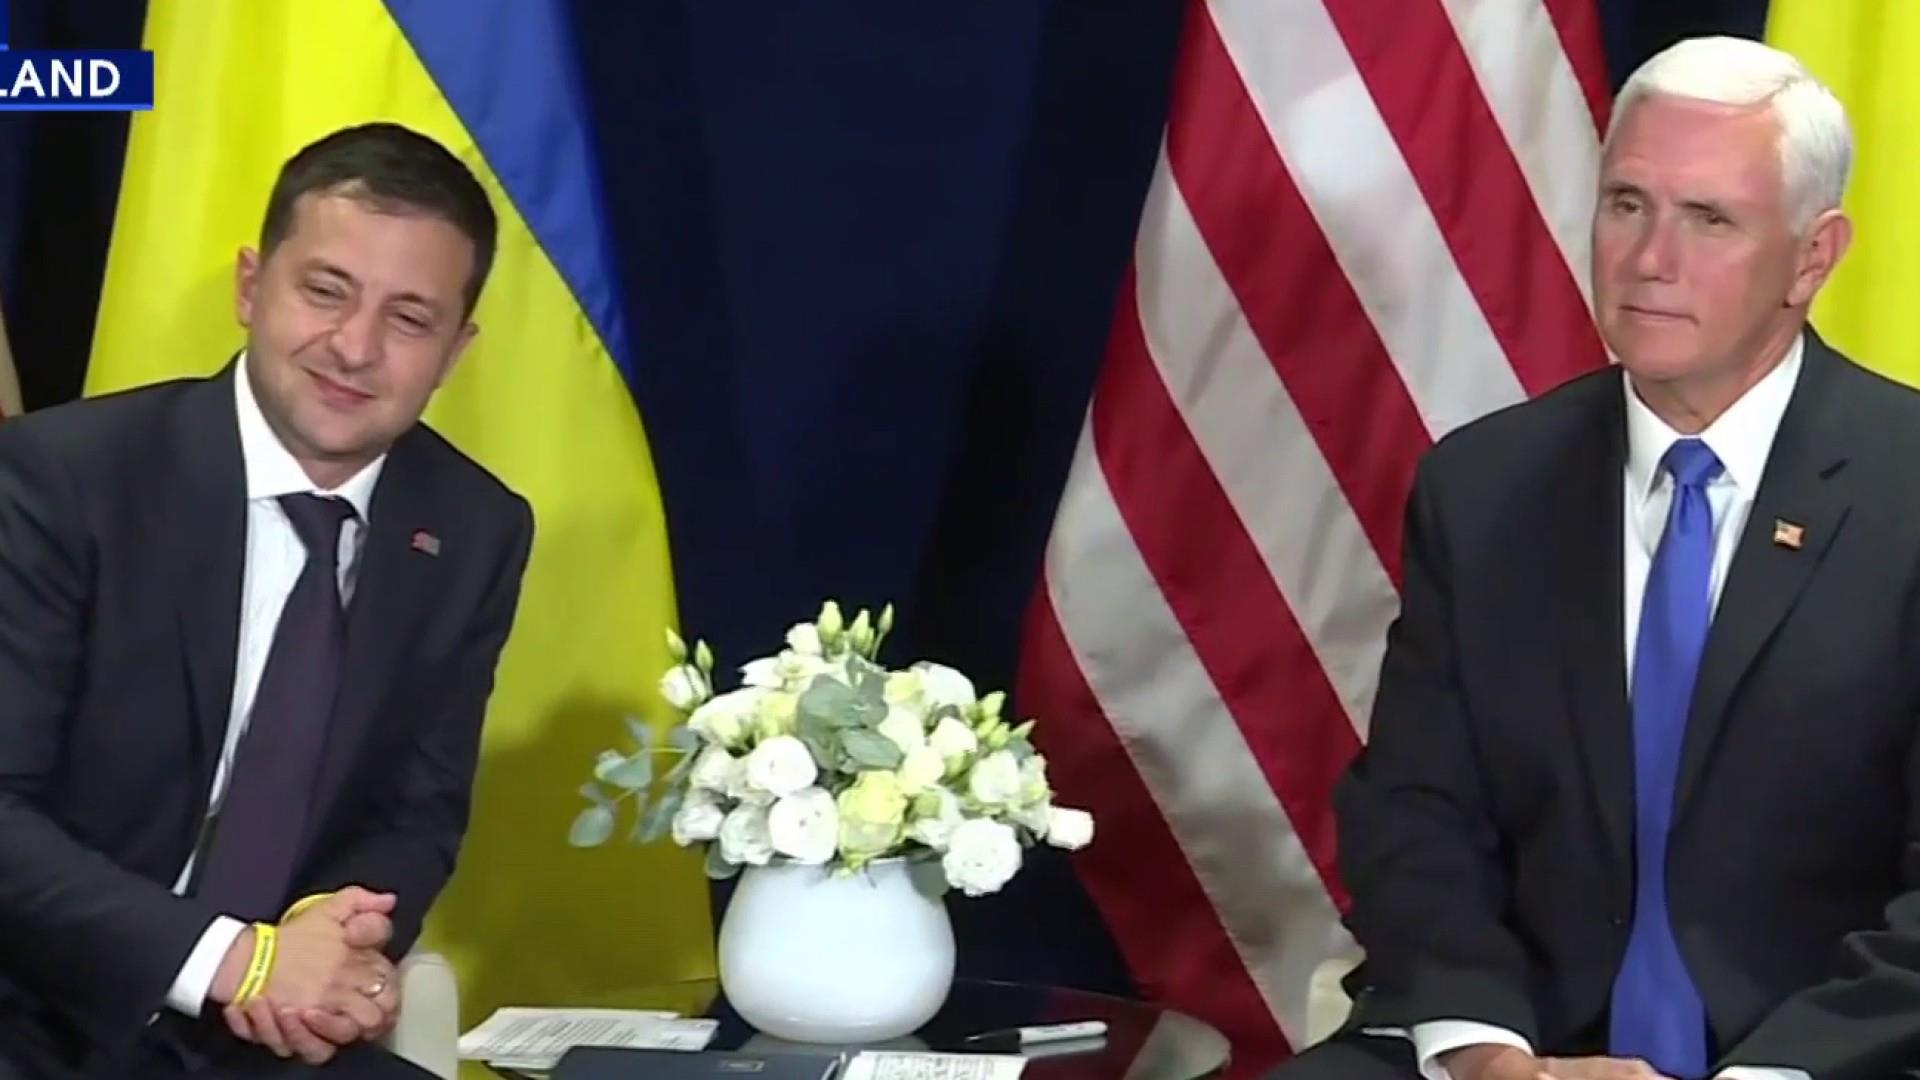 Pence possibly implicated in Trump, Ukraine allegations?